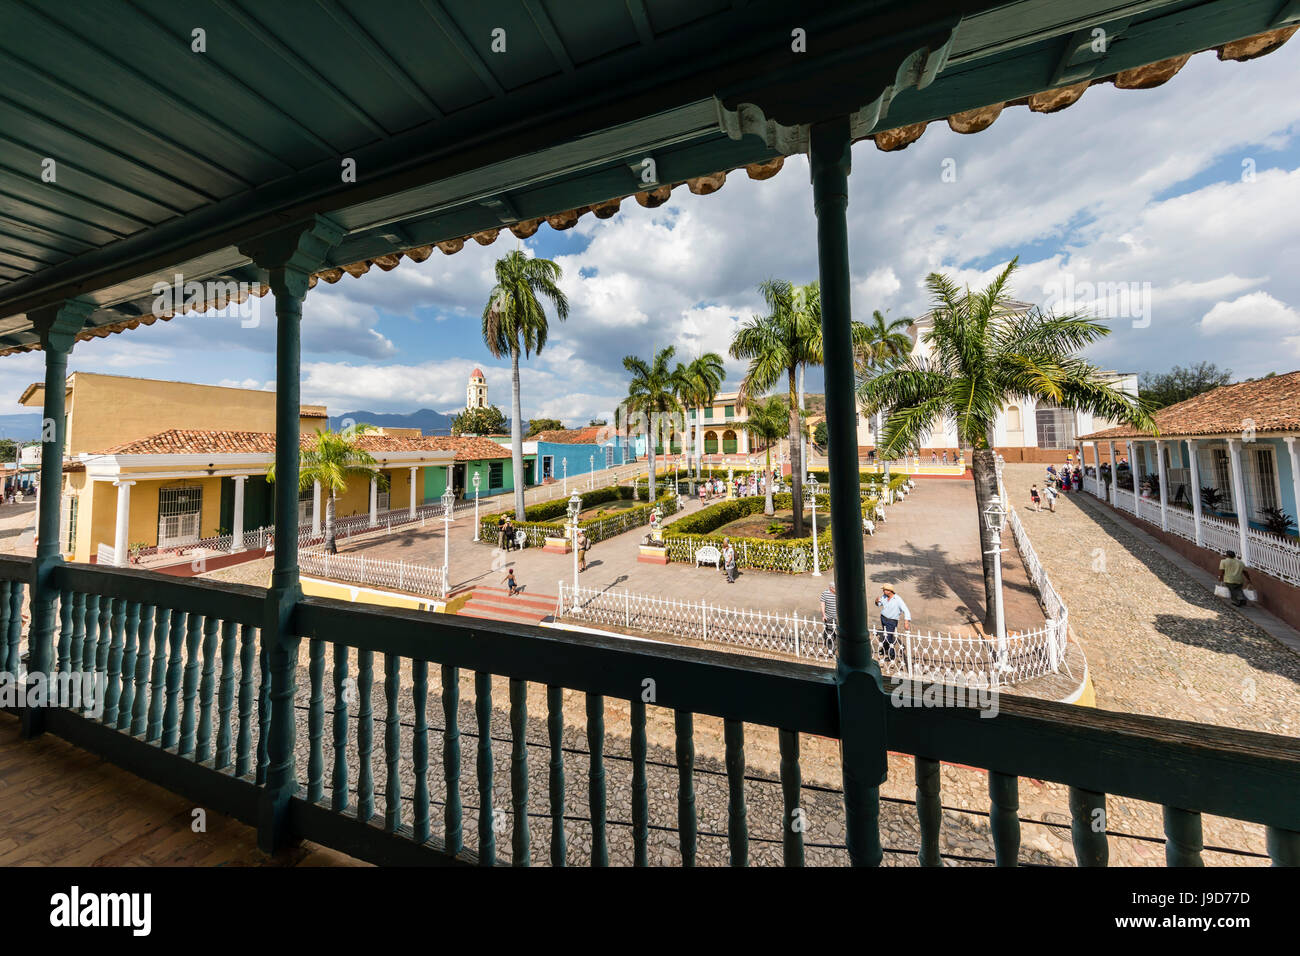 A view of the Plaza Mayor, Trinidad, UNESCO World Heritage Site, Cuba, West Indies, Caribbean, Central America - Stock Image